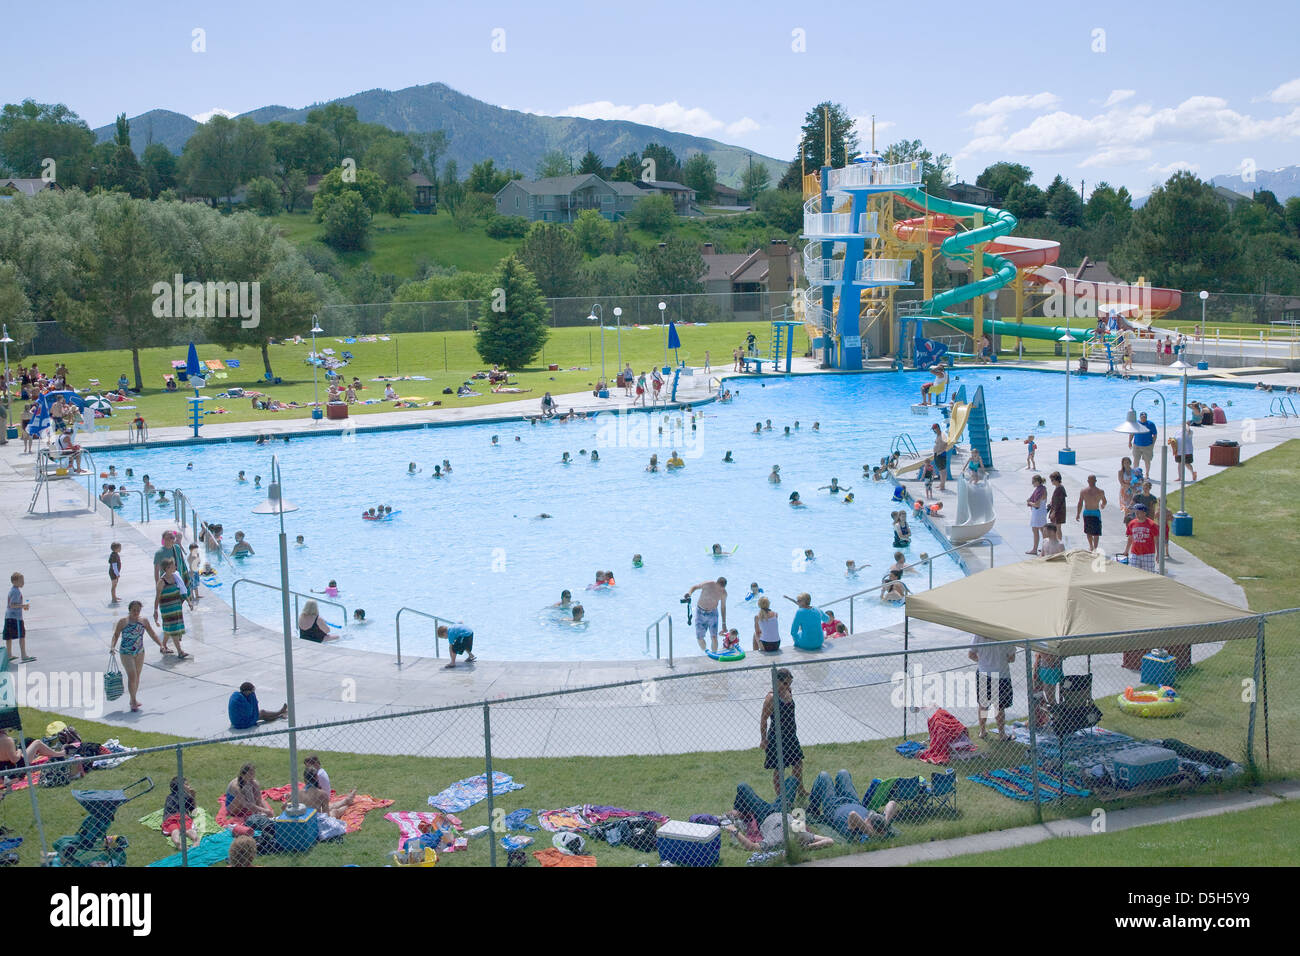 Summer Swimming Pool In Idaho North Of Salt Lake City Utah Stock Photo Royalty Free Image